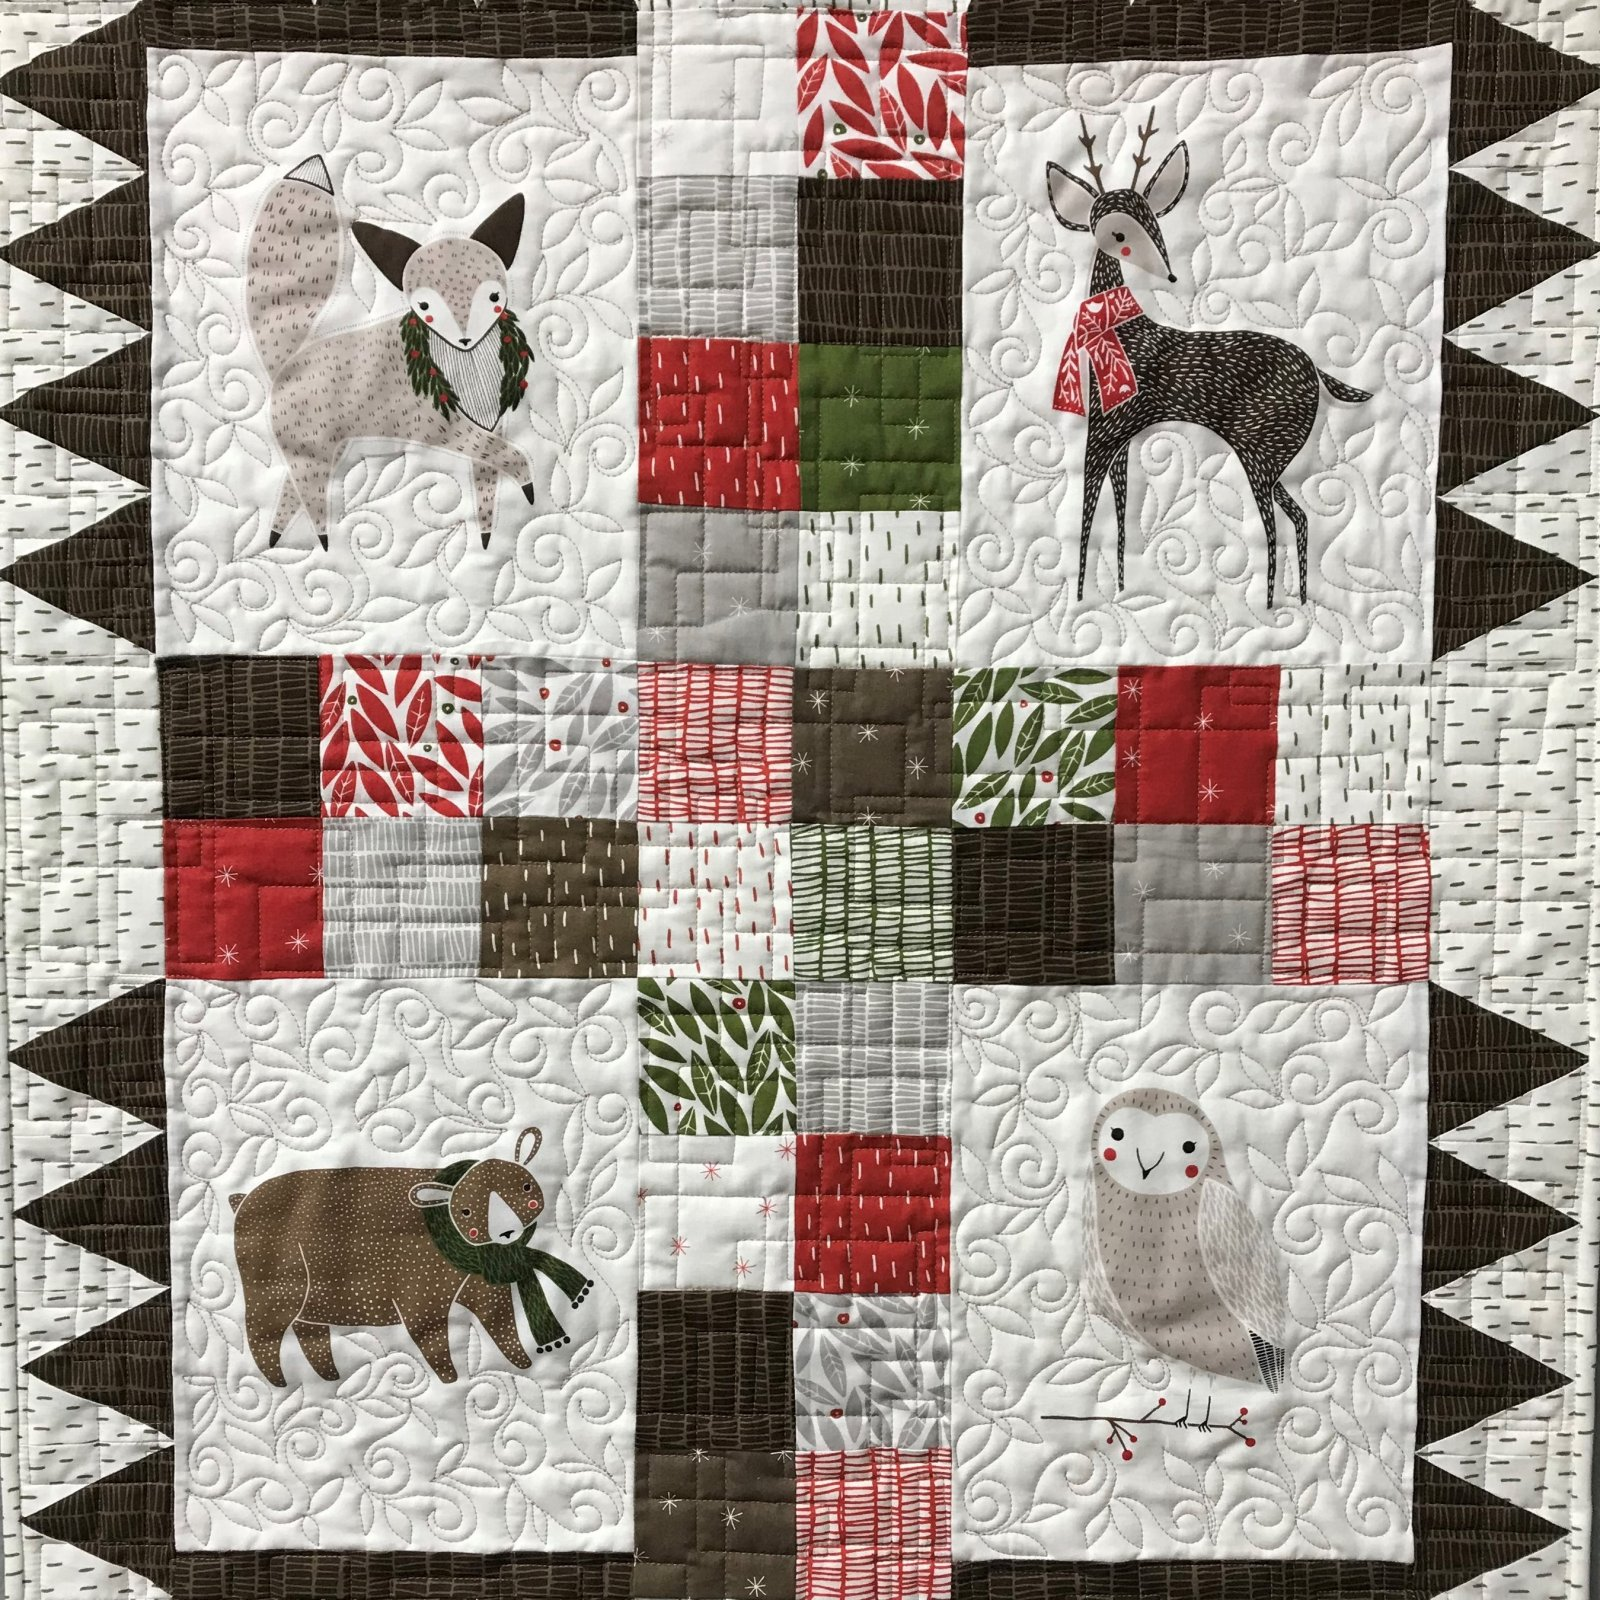 Merrily Wall Hanging Quilt Kit by Quilting Foxes Pattern & Fabric by Gingiber